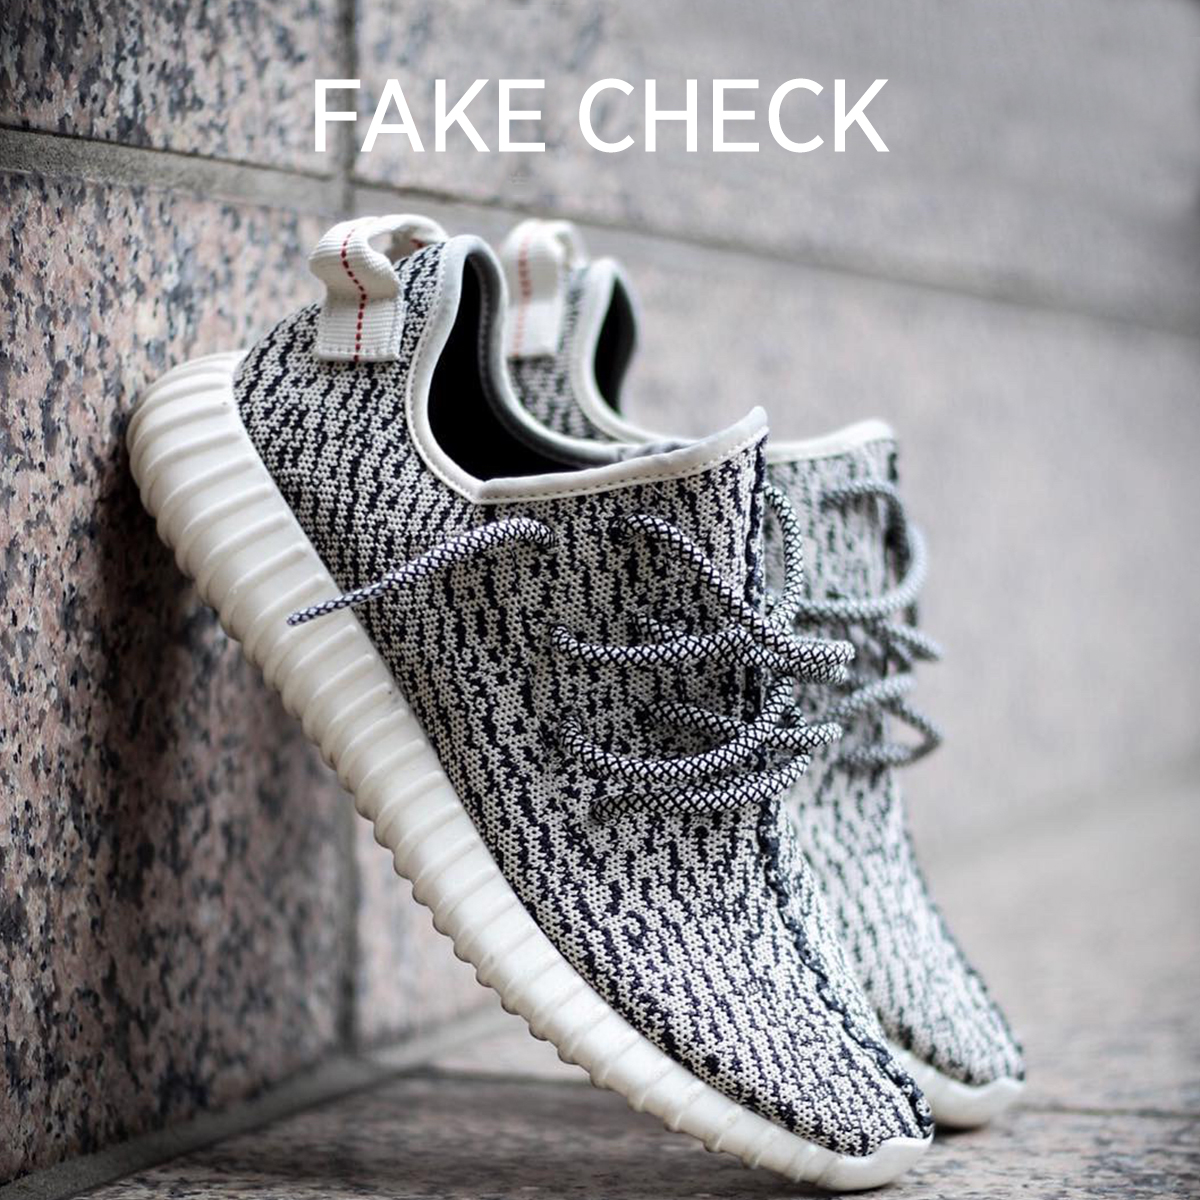 652c03a8103 Klekt shows you how To Spot A Yeezy 350  Turtle Dove  Fake